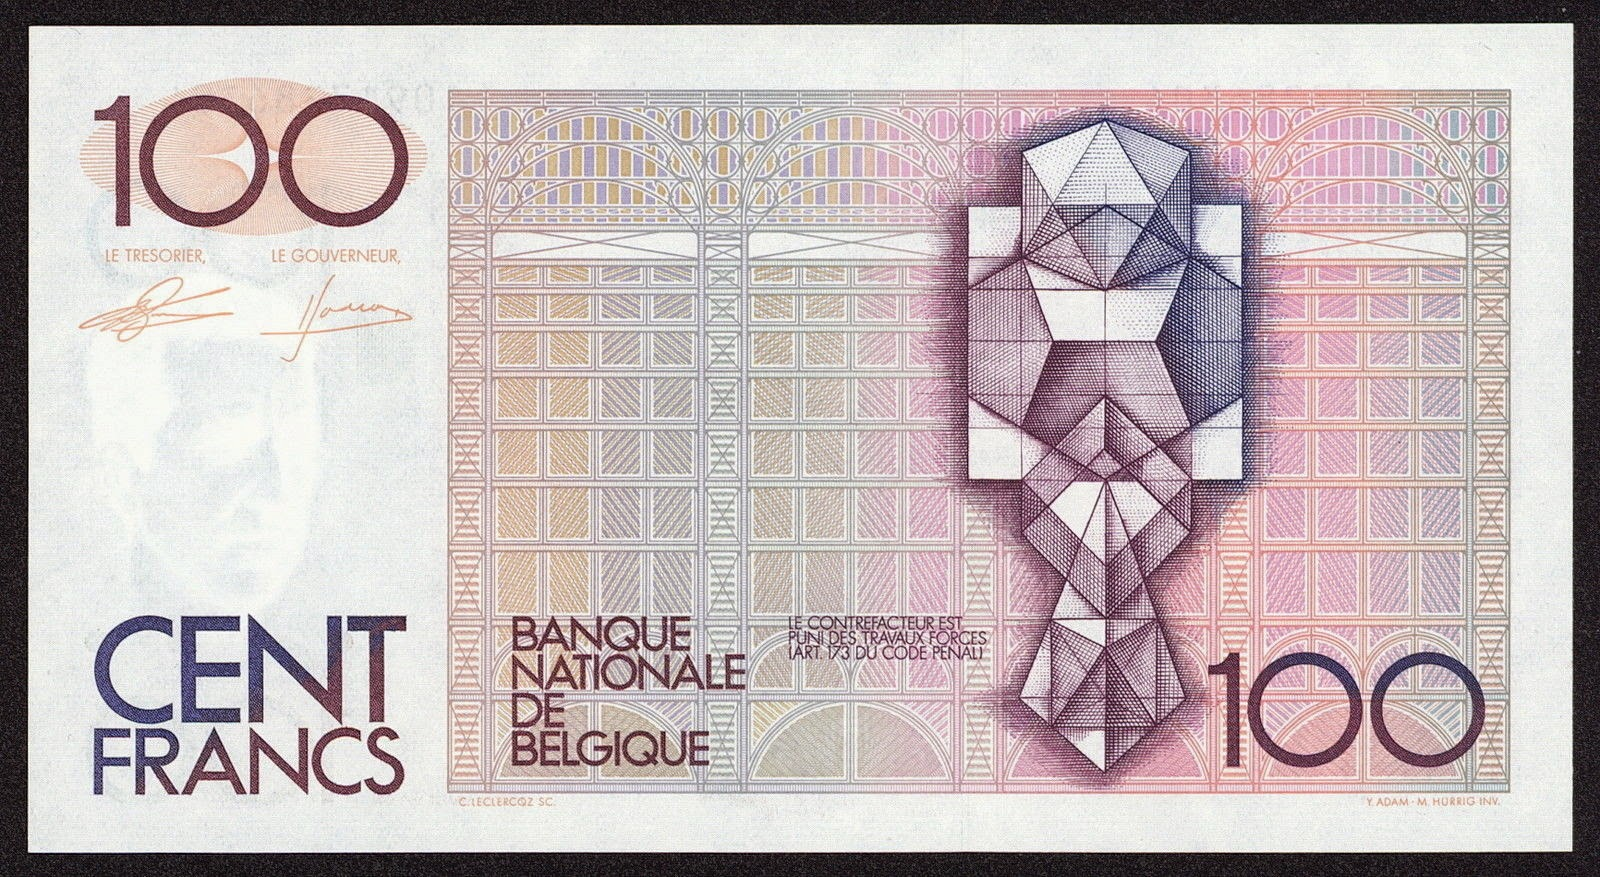 Belgium Money Currency 100 Francs banknote 1982